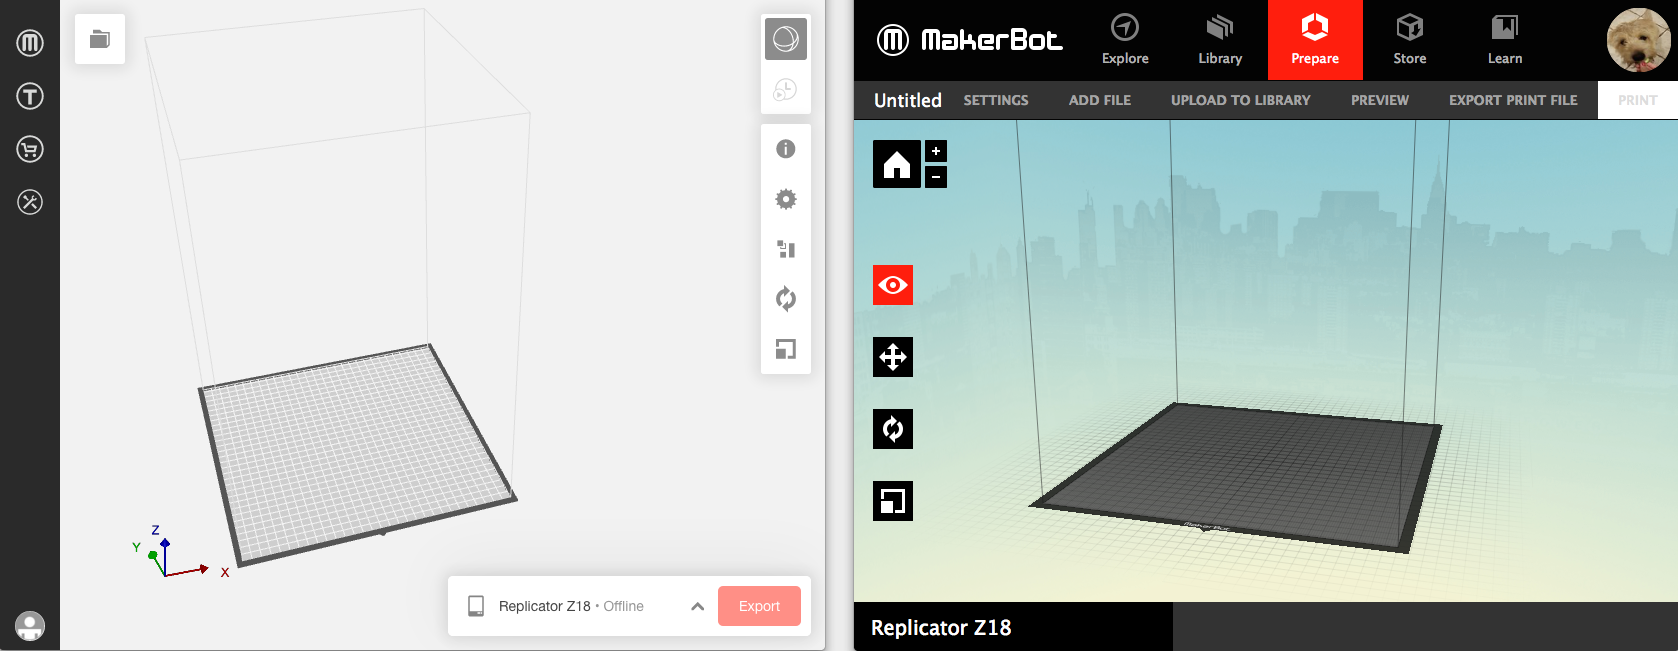 I Can't Update The Firmware | MakerBot Replicator Z18